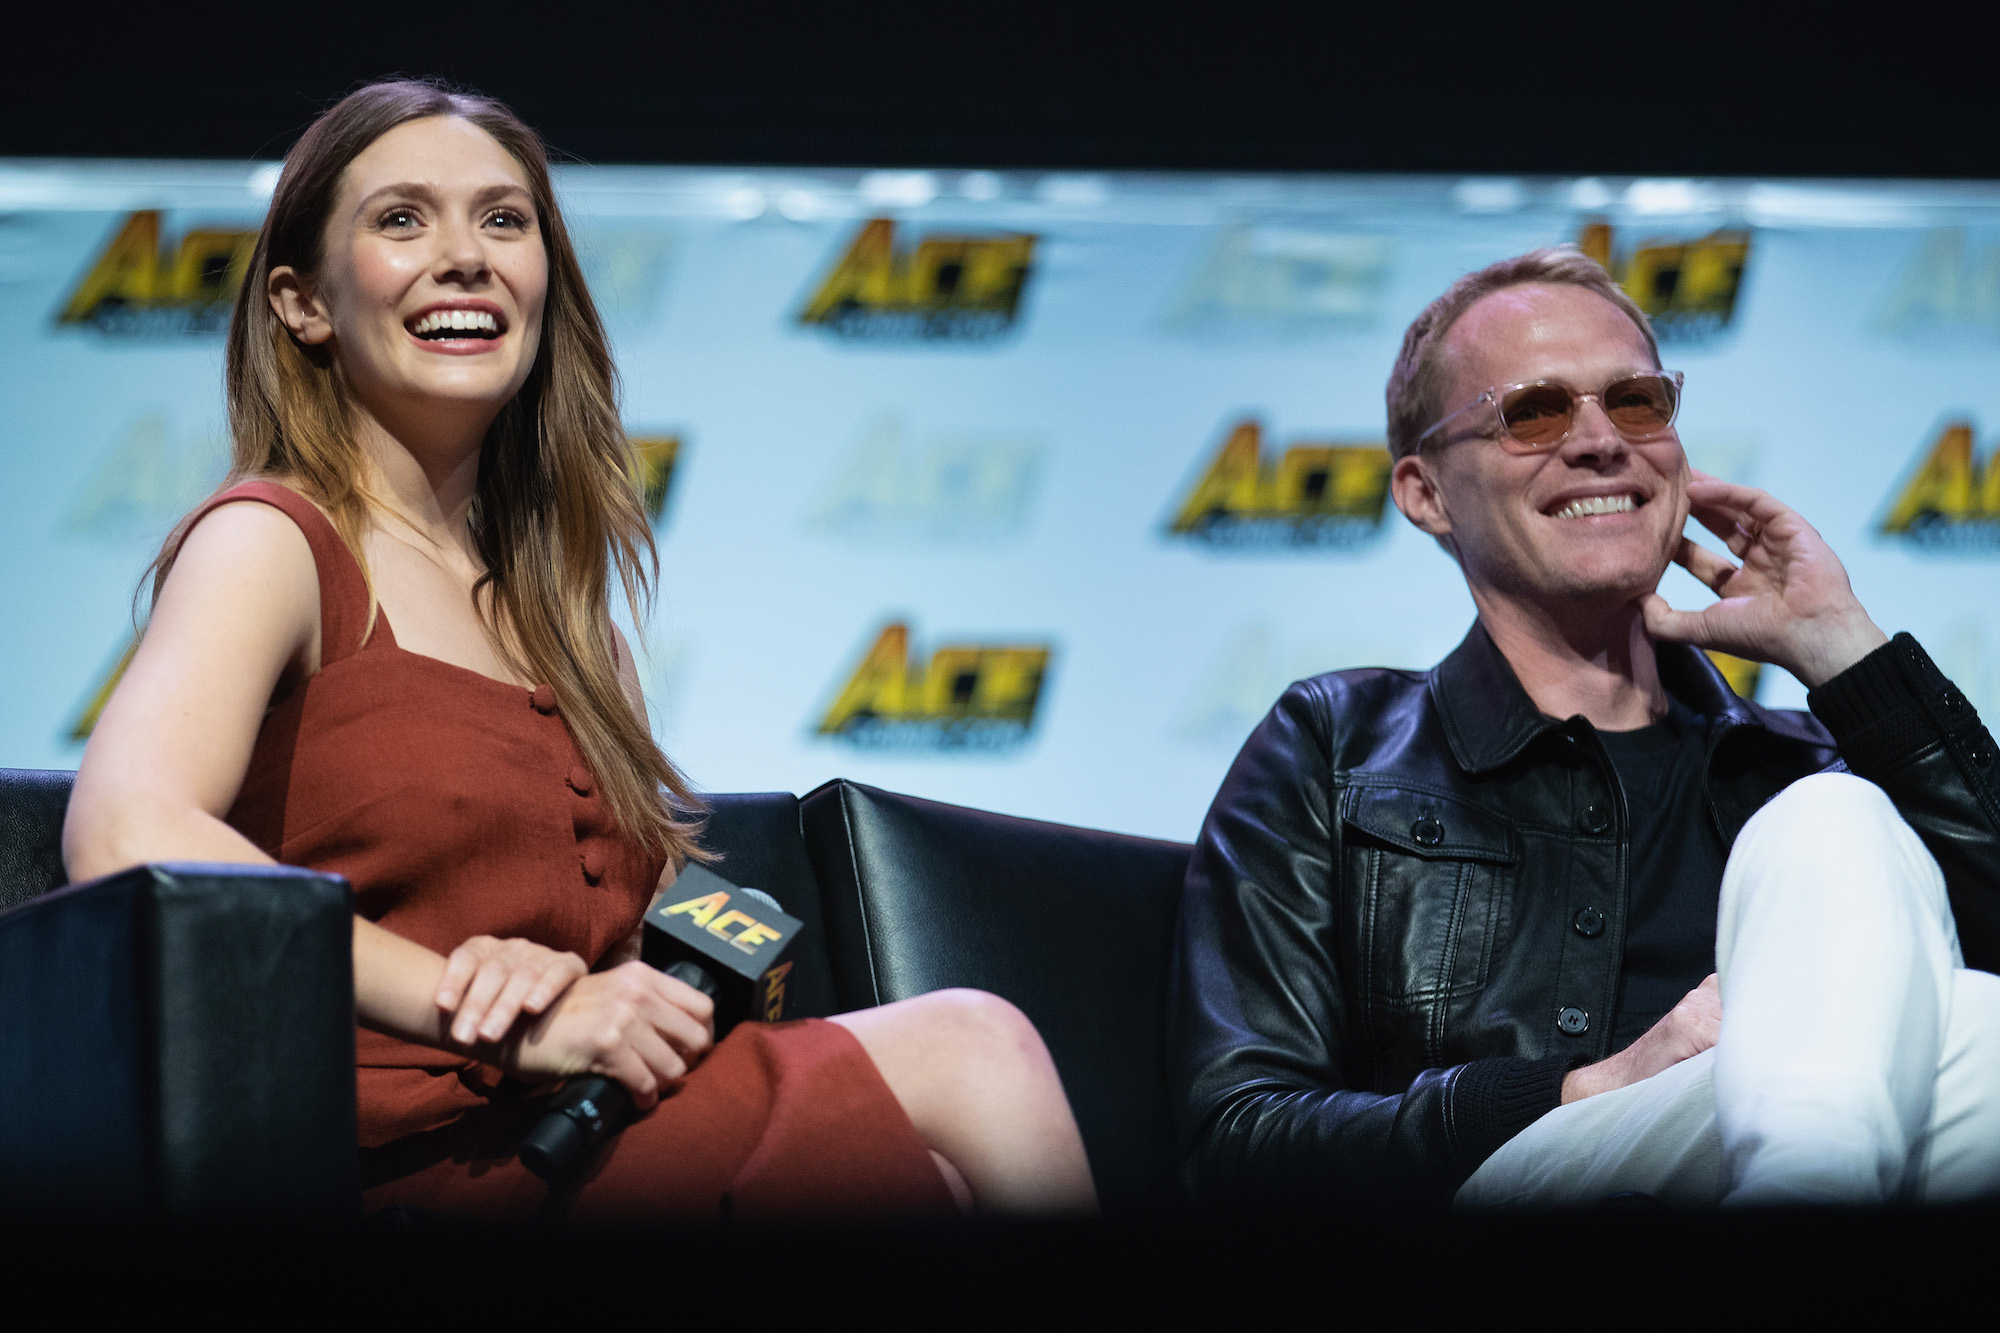 Elizabeth Olsen and Paul Bettany on stage at ACE Comic Con on June 23, 2018